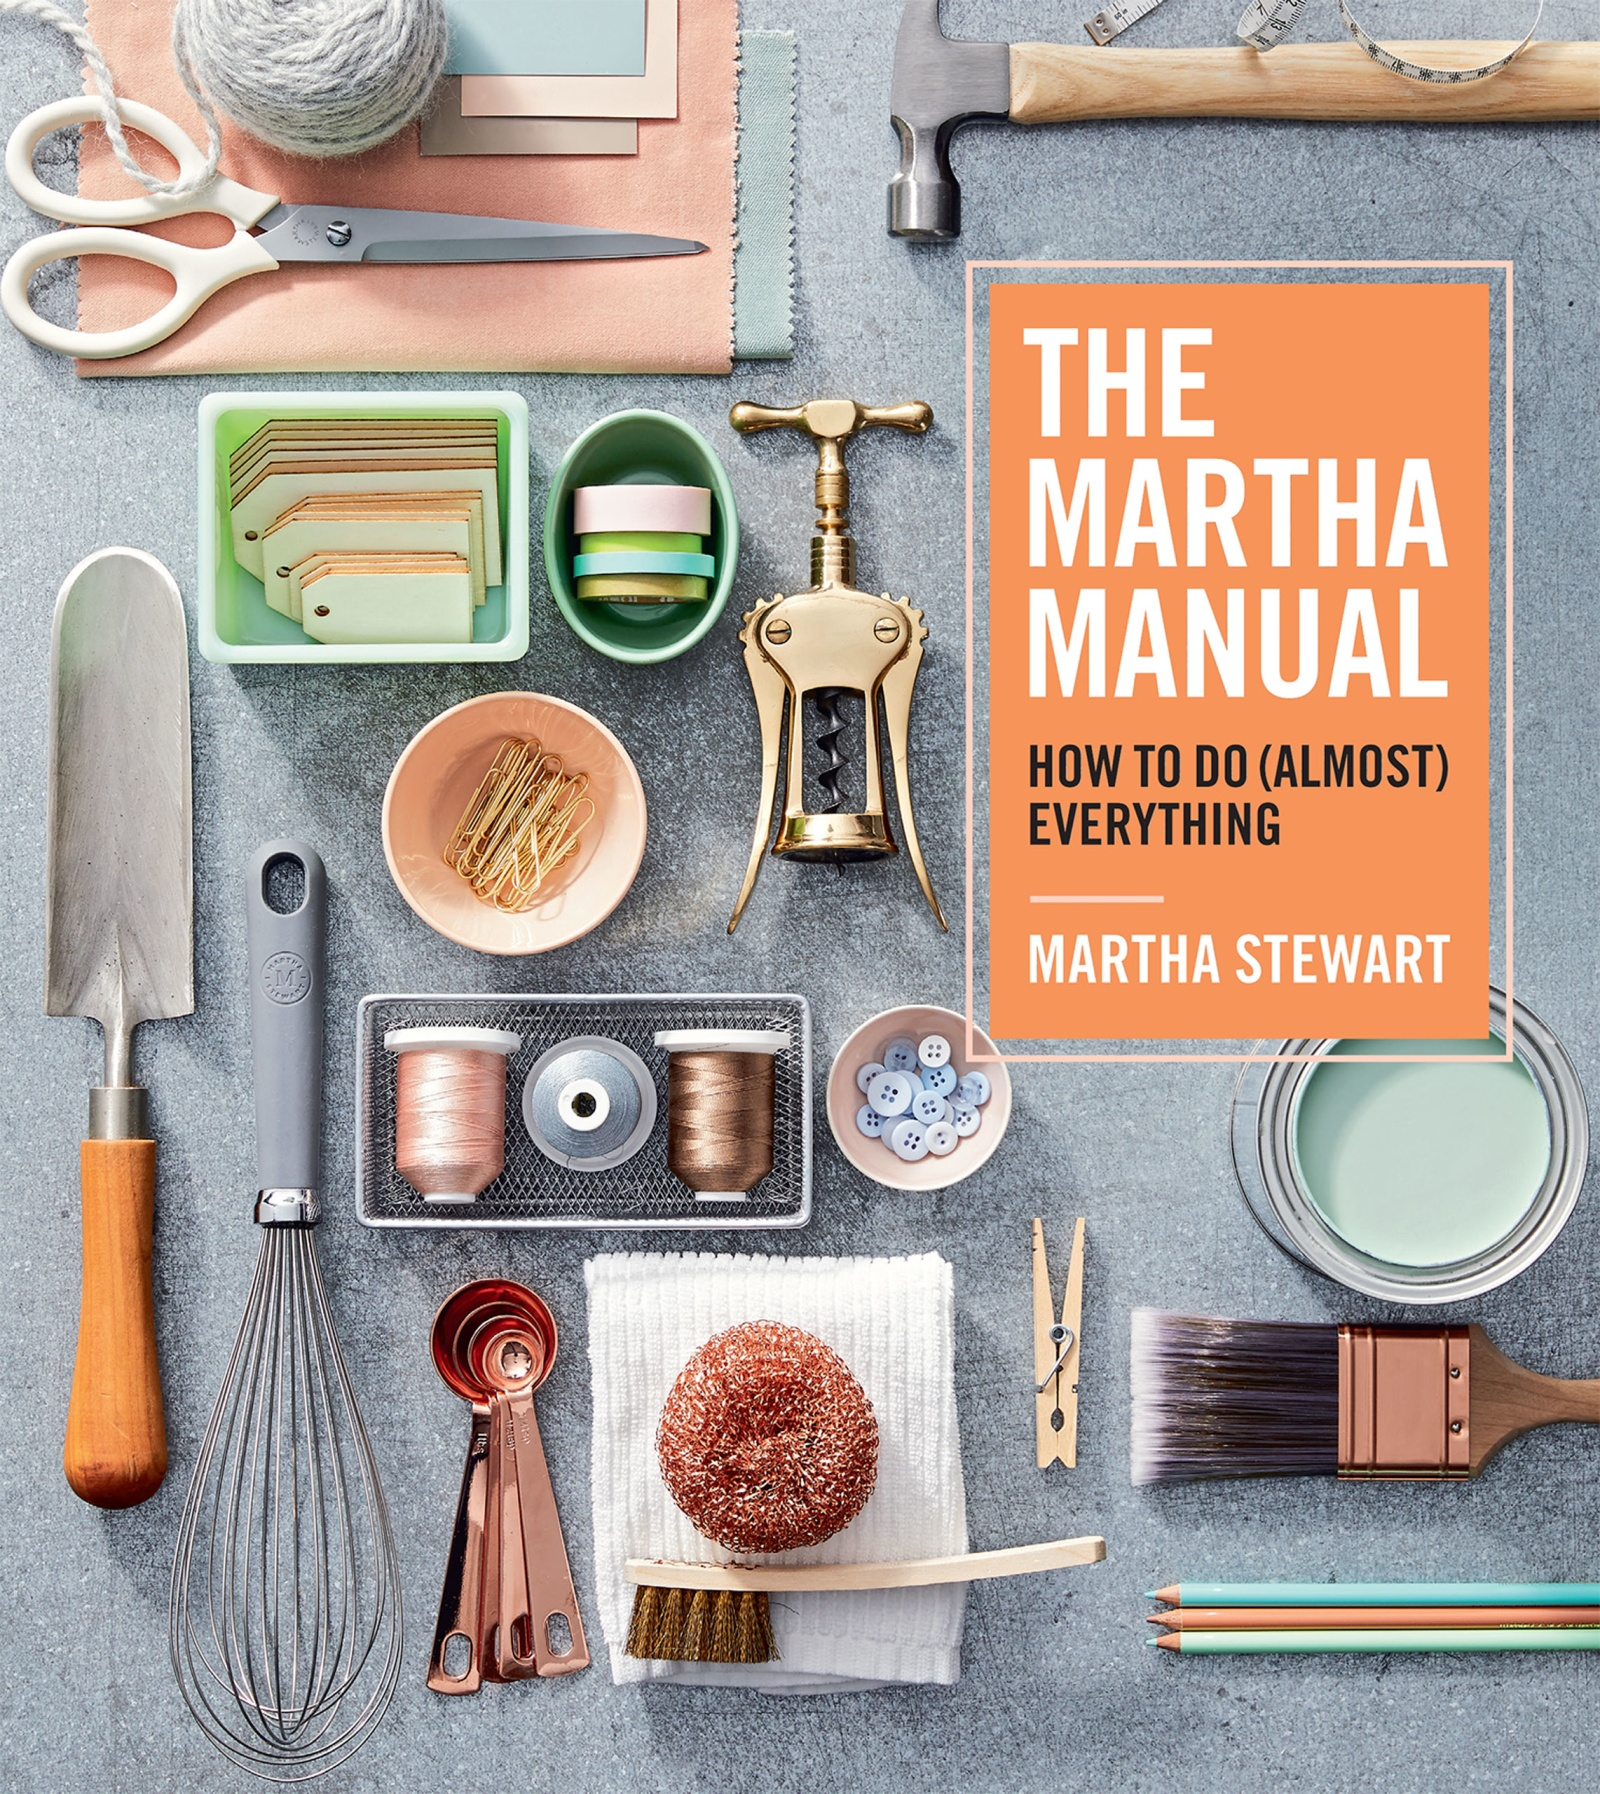 The Martha Manual How to Do (Almost) Everything